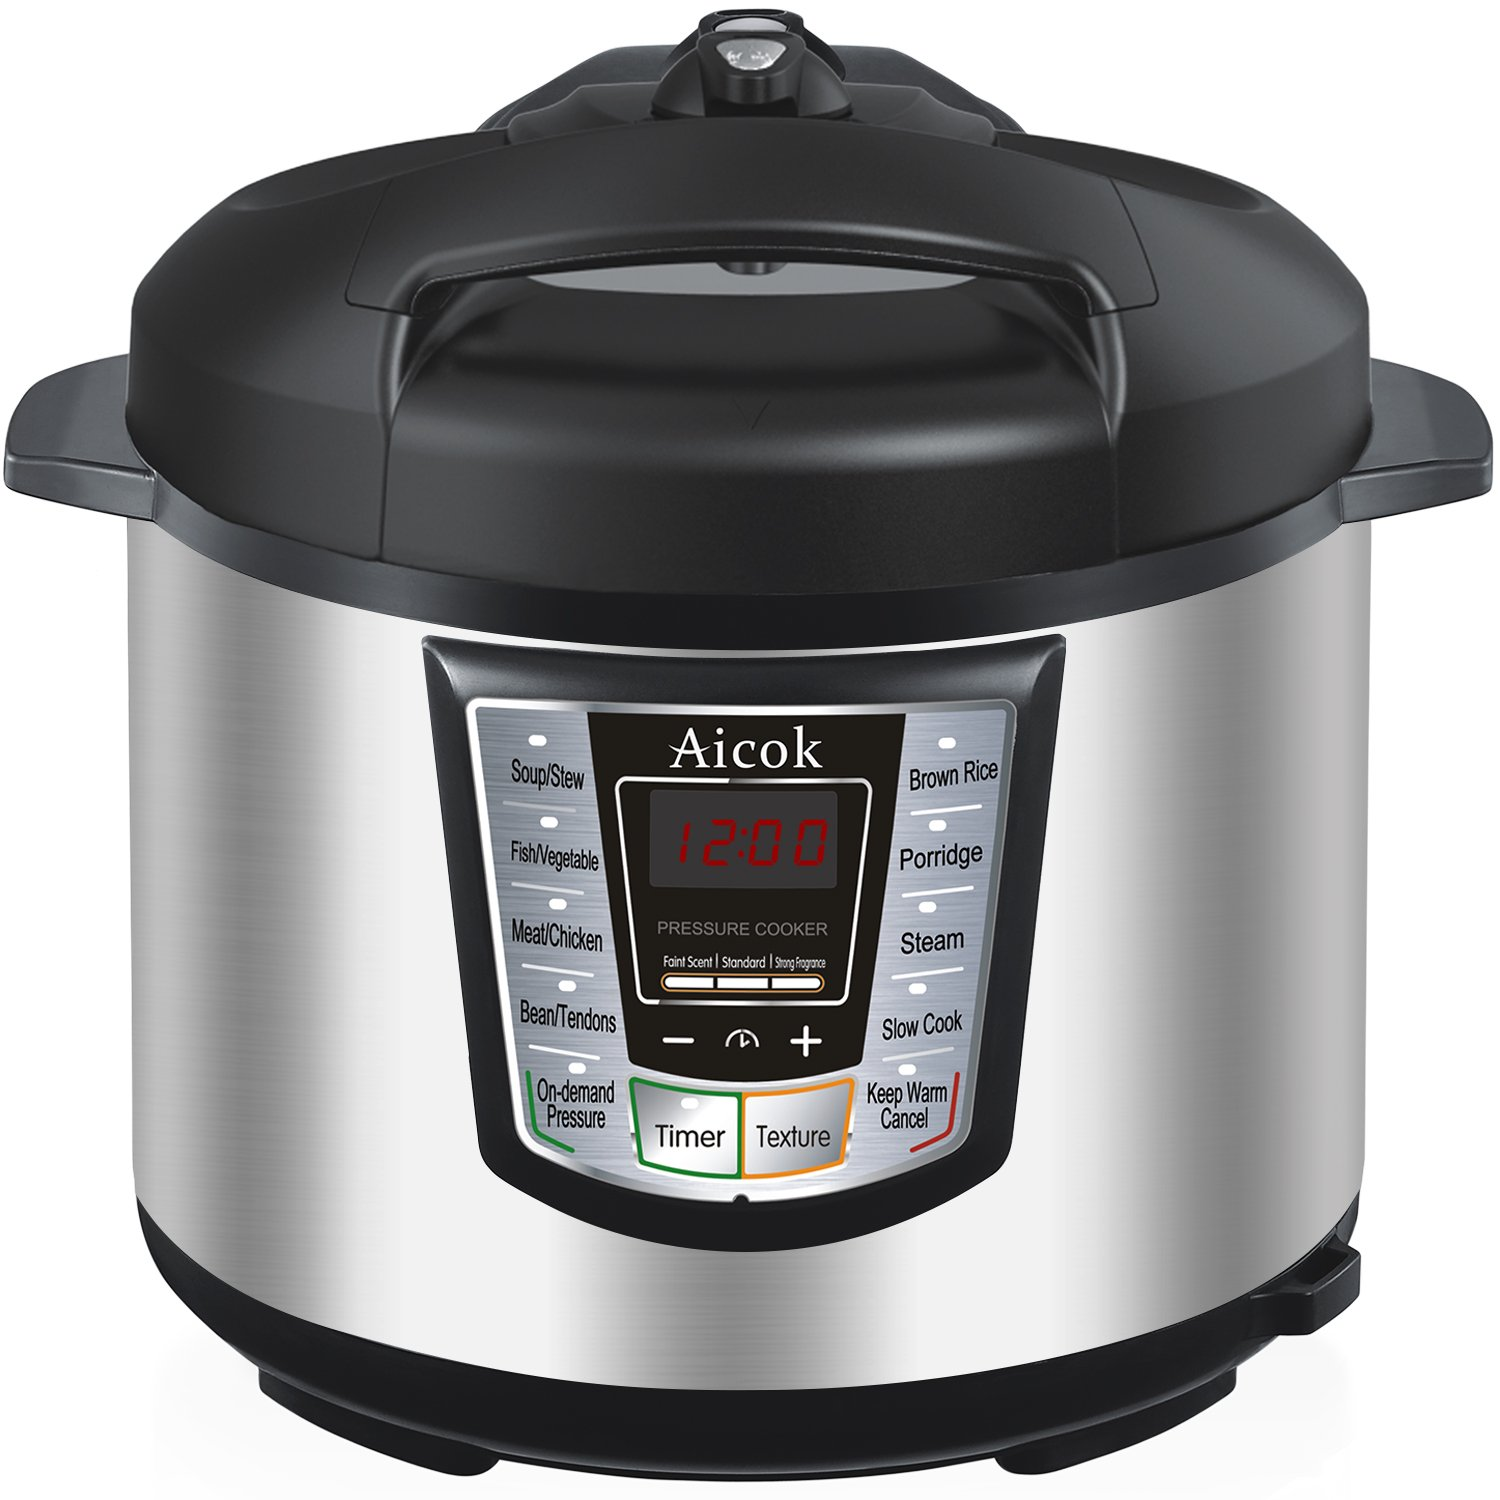 Pressure cooker bed bath beyond - Amazon Com Aicok 7 In 1 Multi Functional Programmable Electric Pressure Cooker 6 Quart 1000w Kitchen Dining